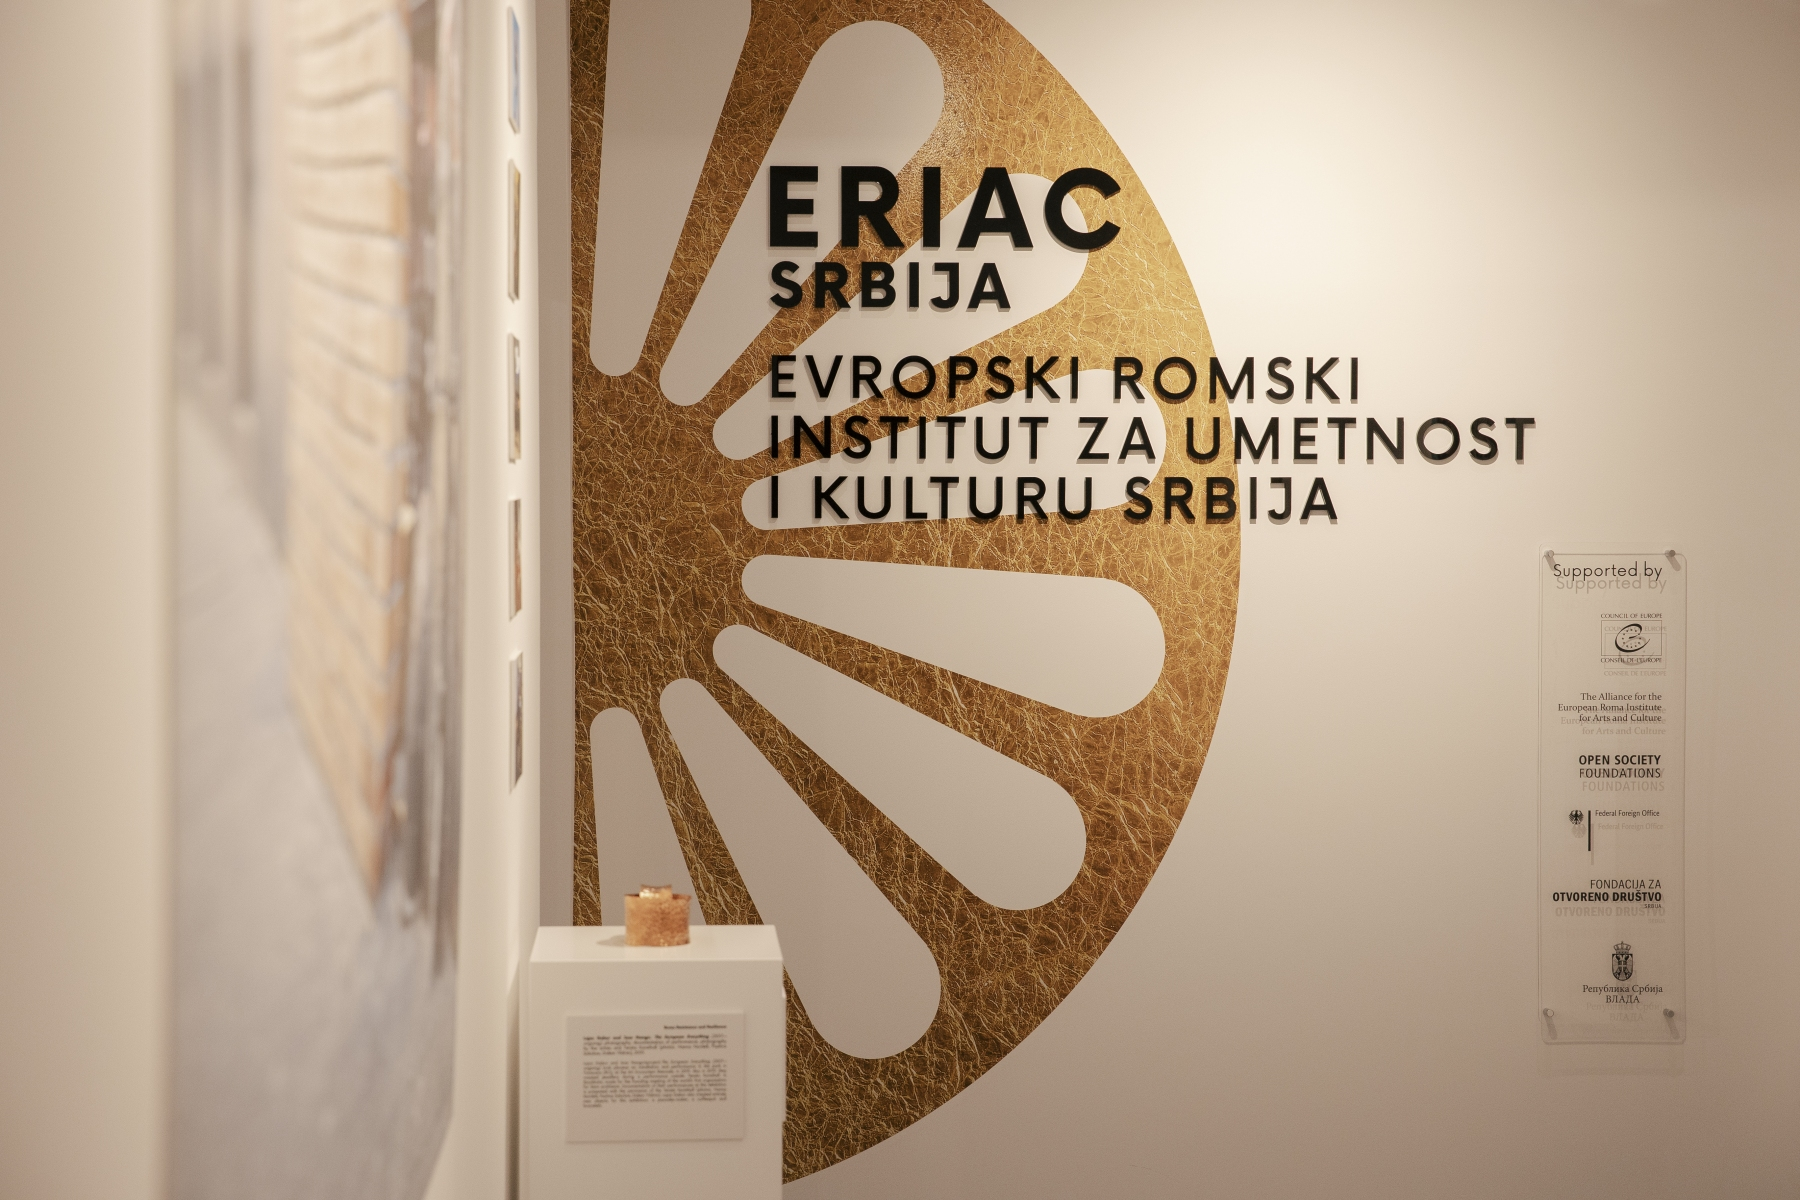 Eriac-Serbia-and-the-Roma-Education-Fund-Opening_May_2021_VZ002